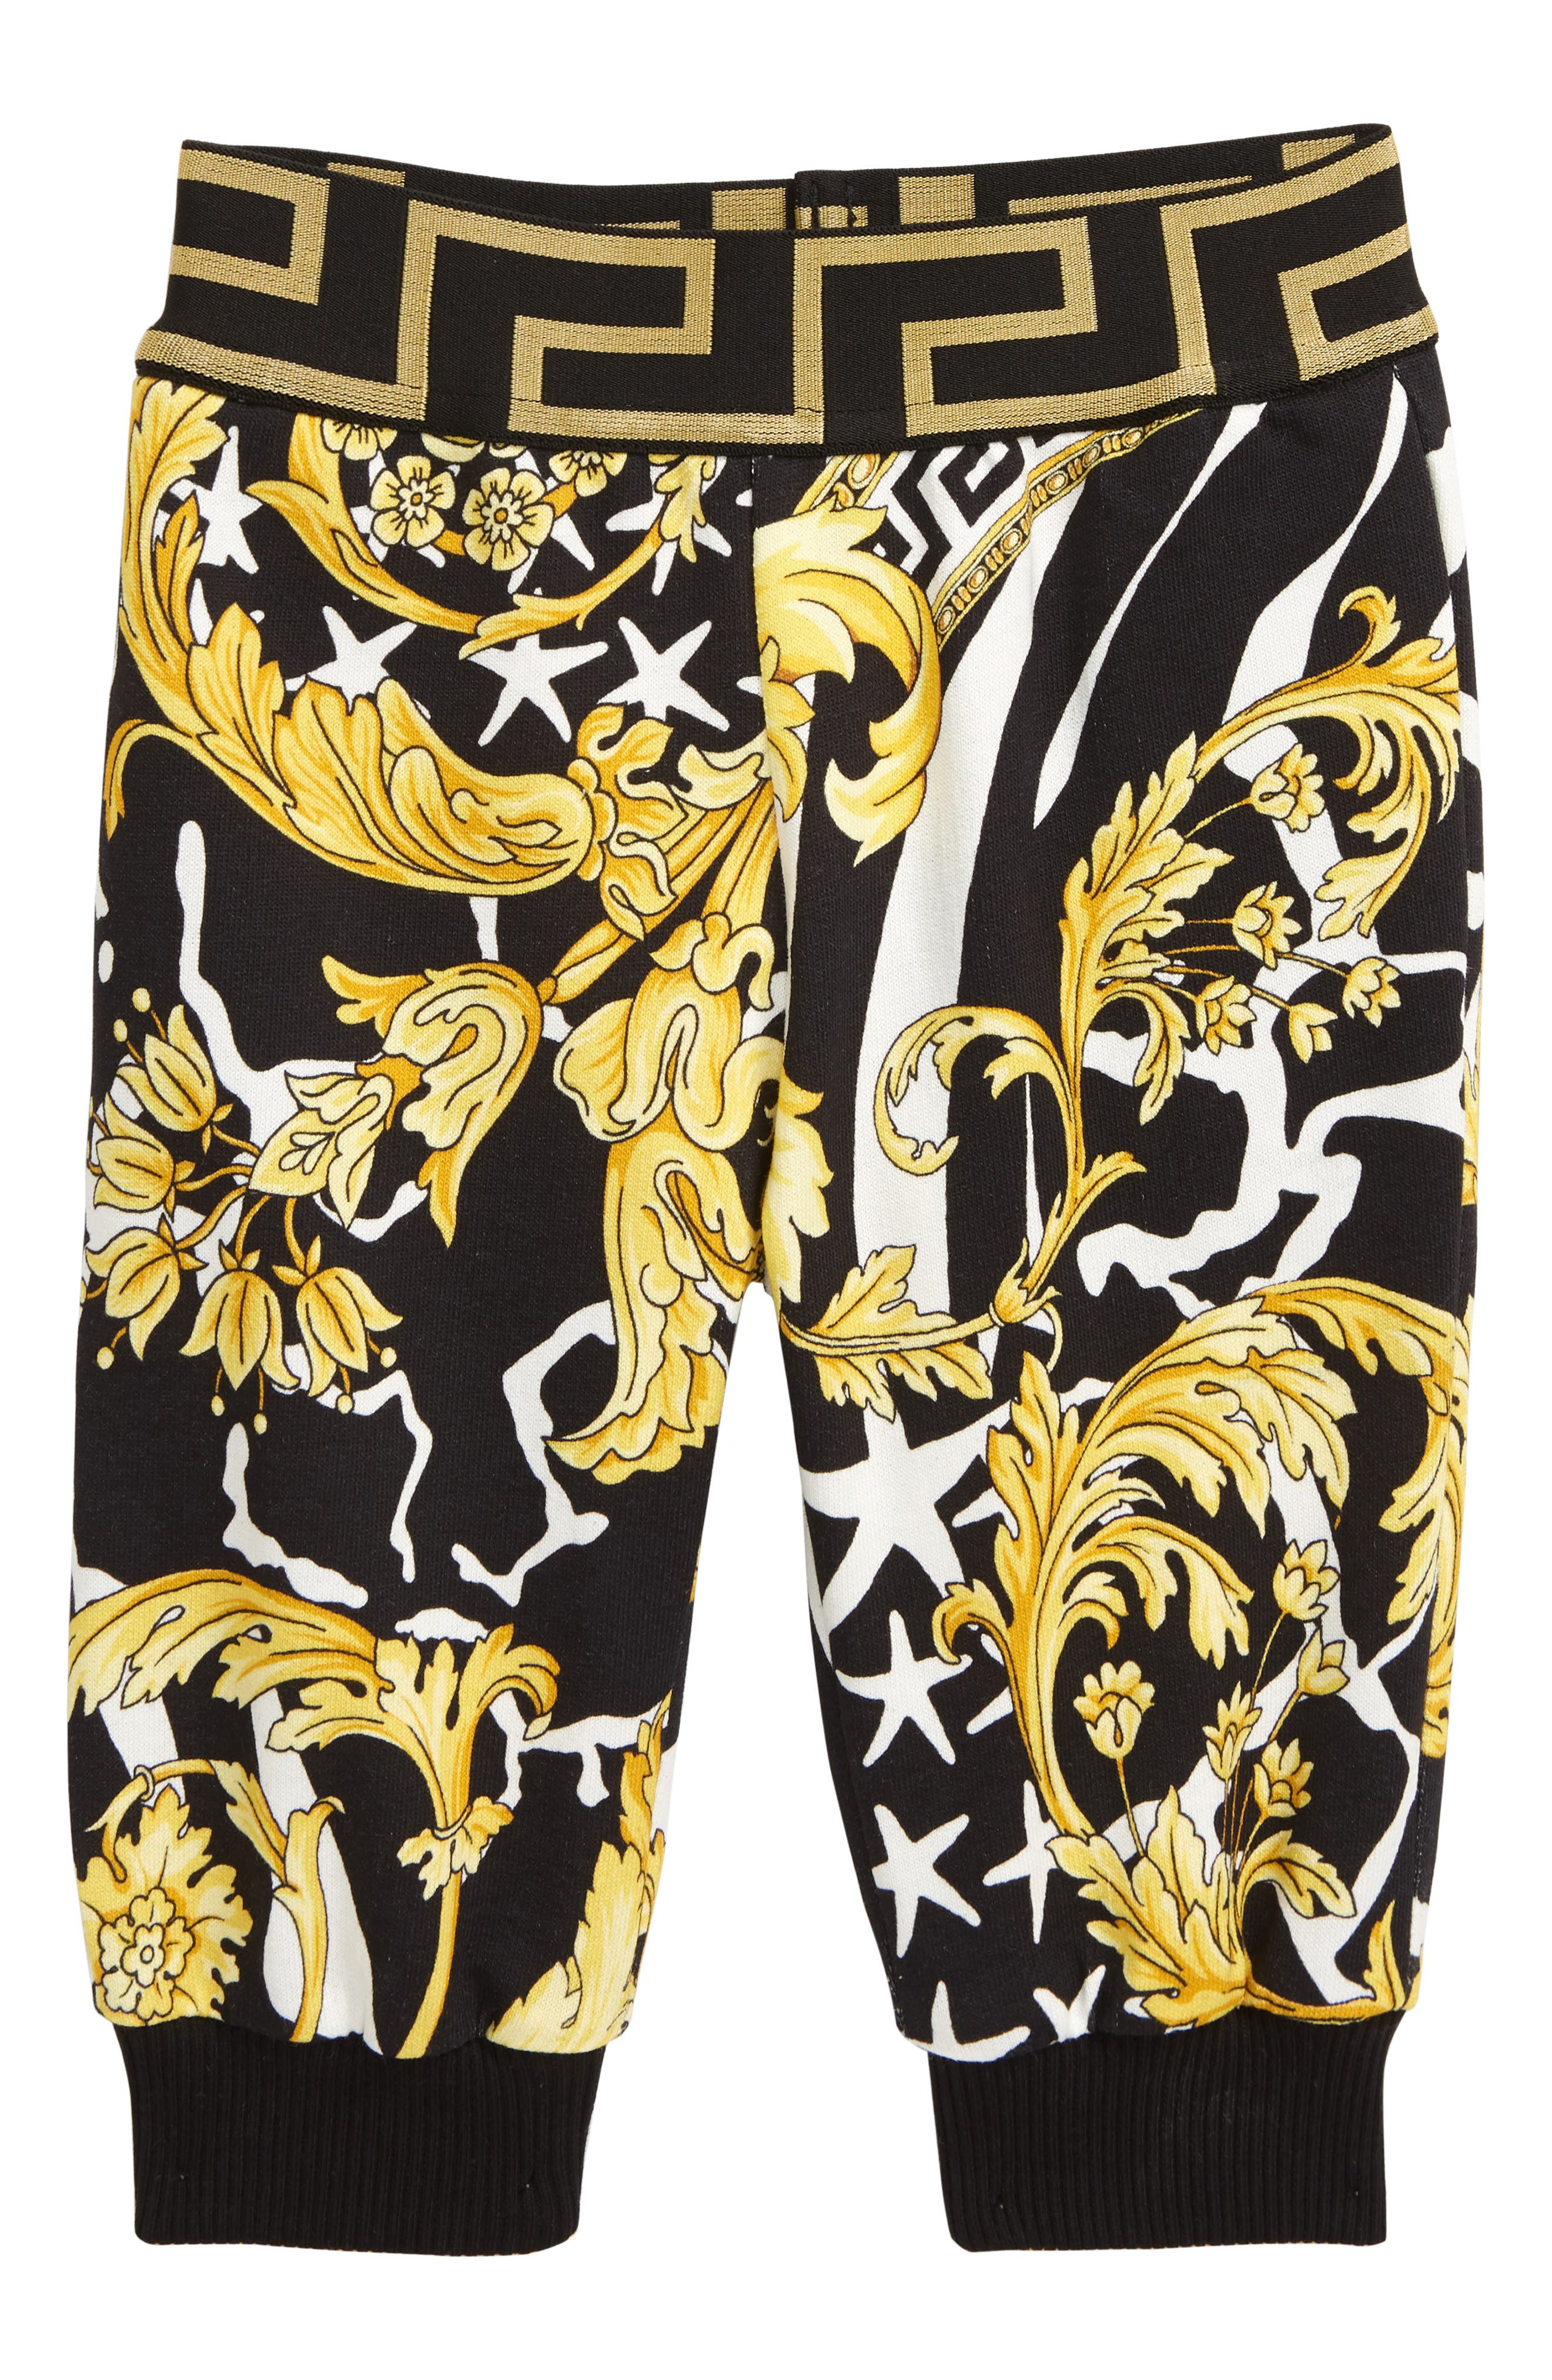 NEW Lounge Pants Versace Young Kids Unisex Sweatpants Black with Stripes